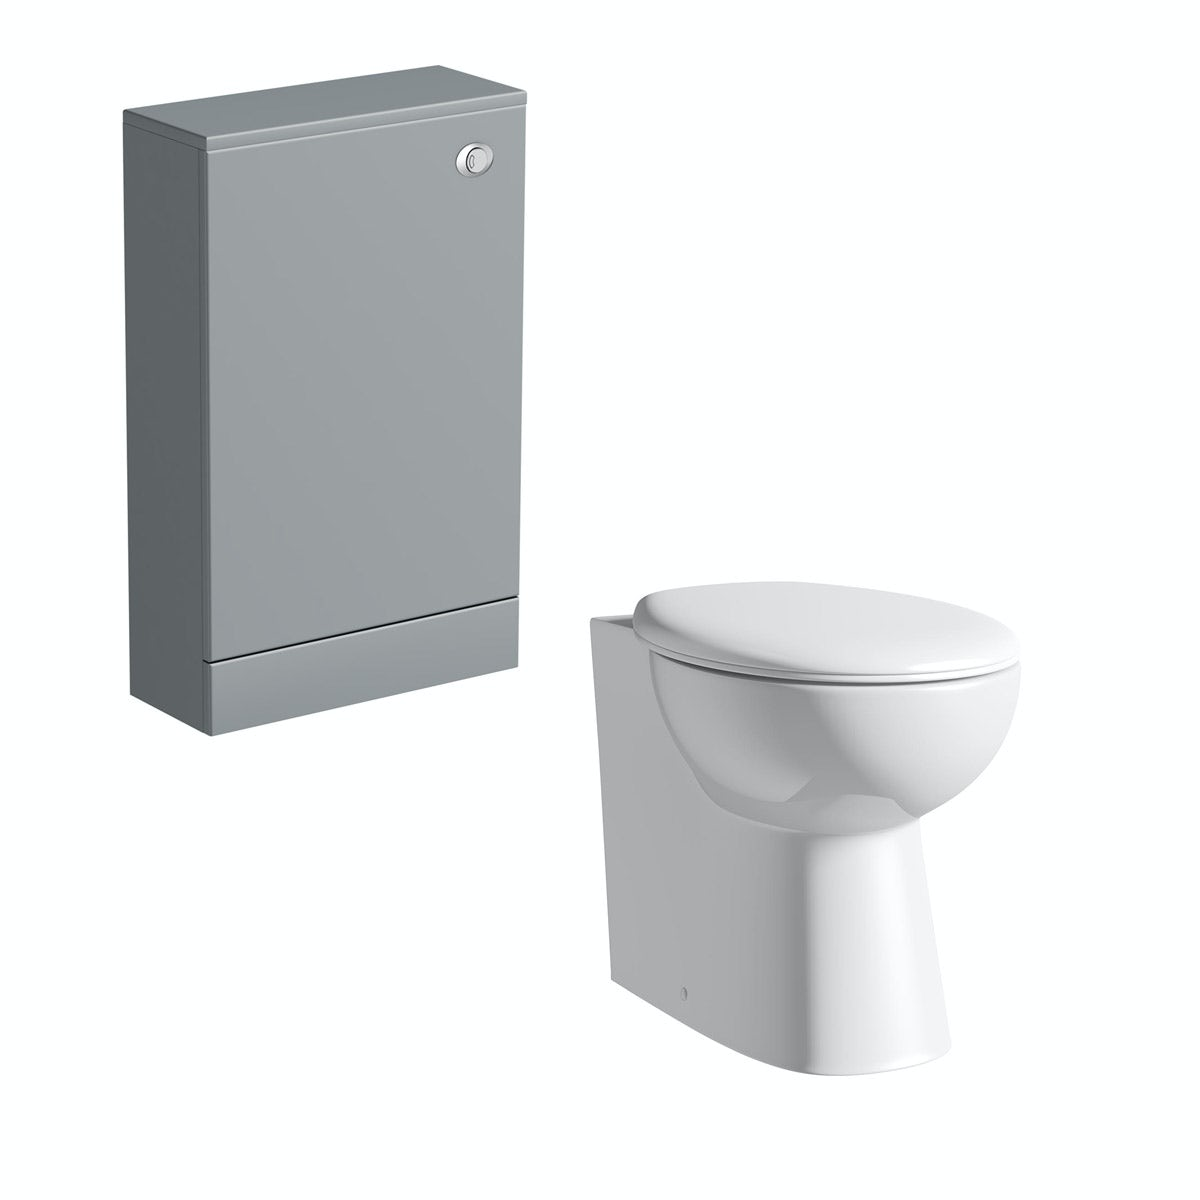 Orchard Derwent stone grey back to wall unit with Clarity back to wall toilet